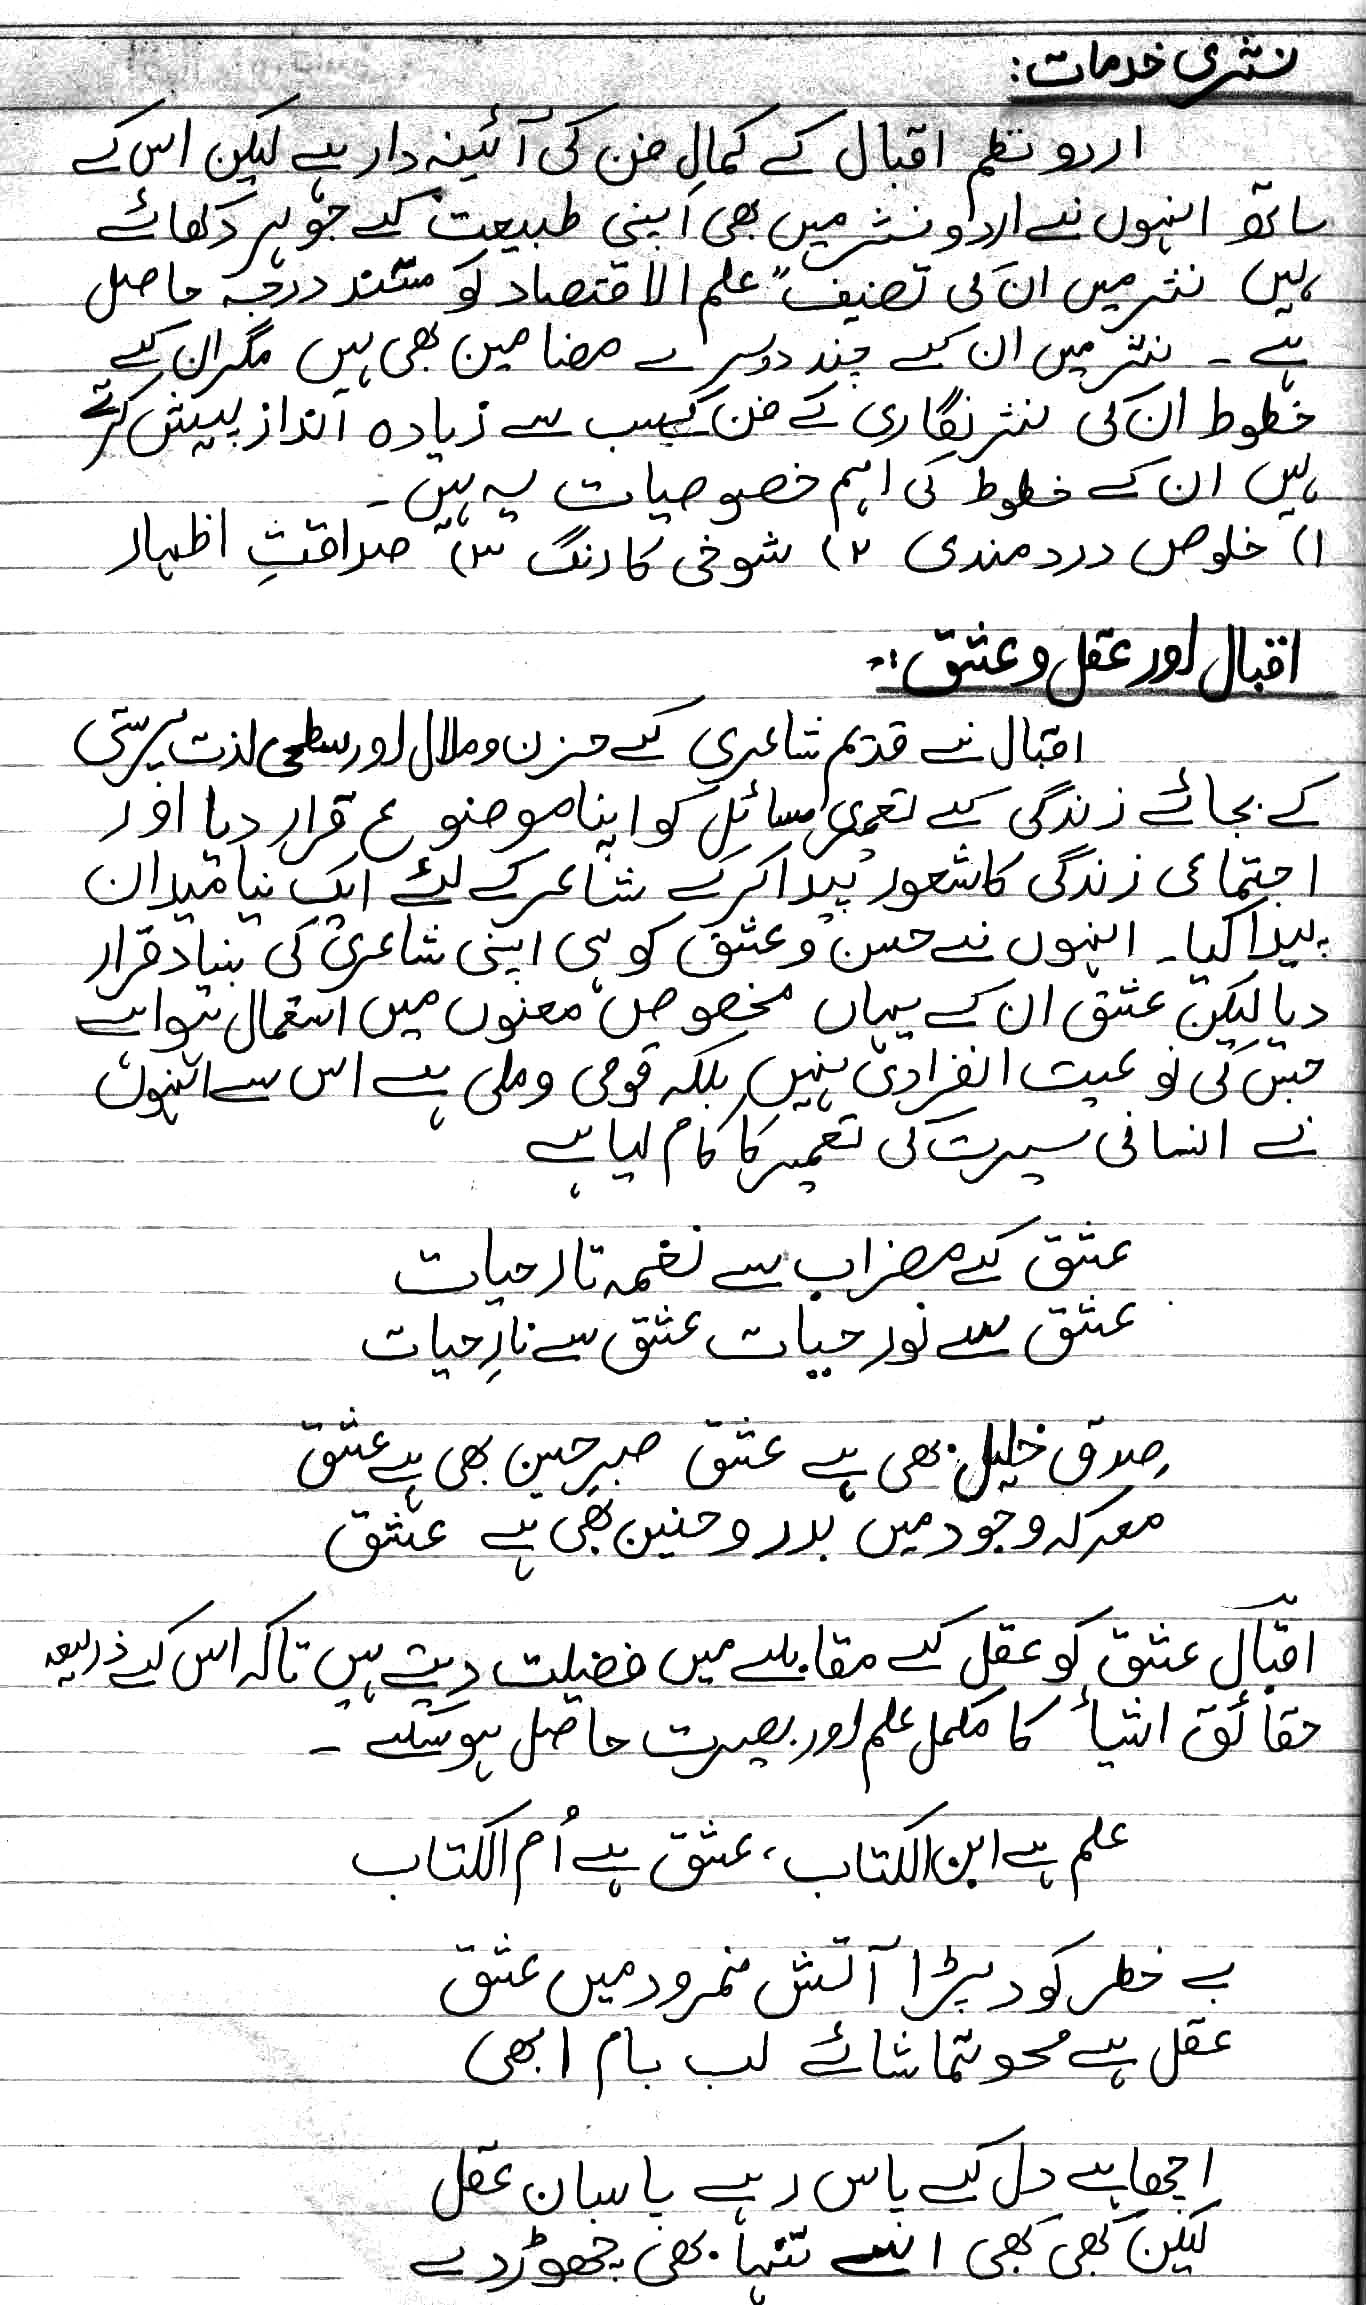 029 Grade Essay Topics Jpg Imposing 7 Narrative Urdu Full